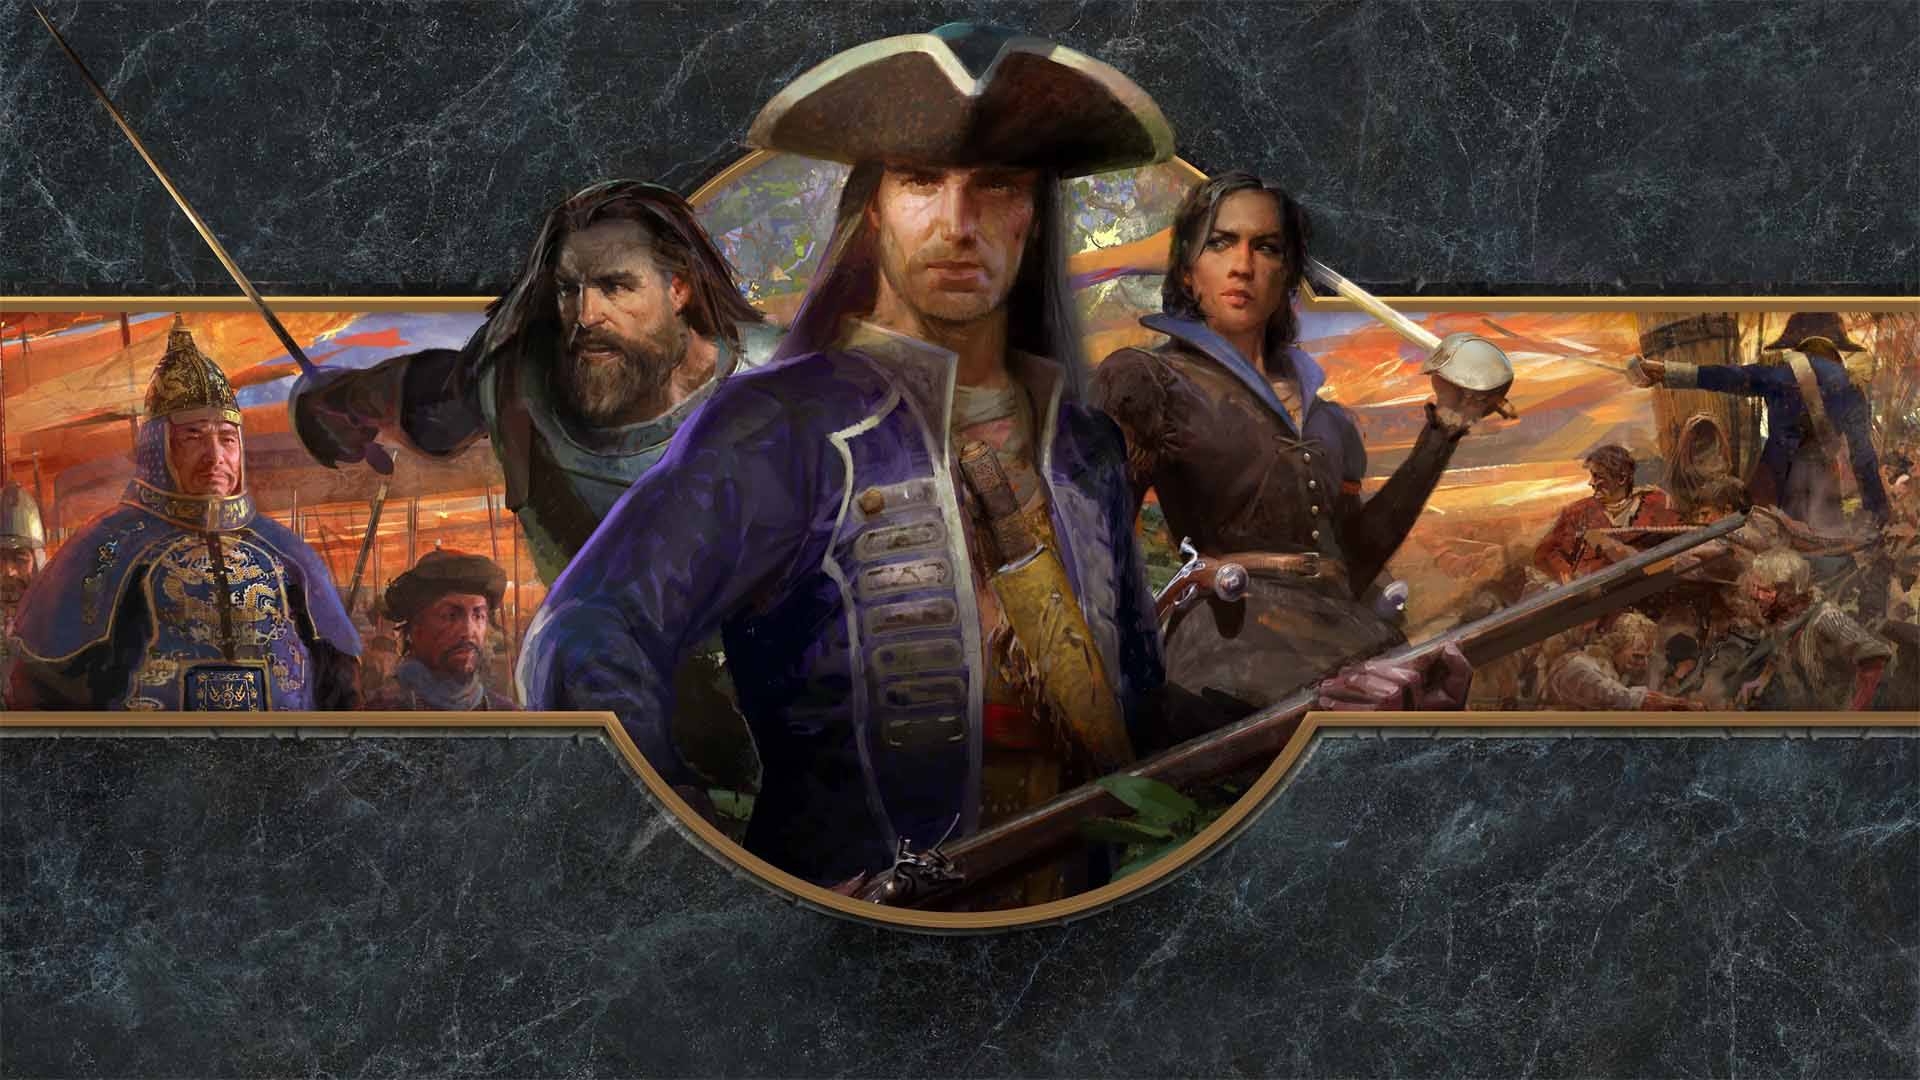 The video compares Age of Empires III: Definitive Edition with its original